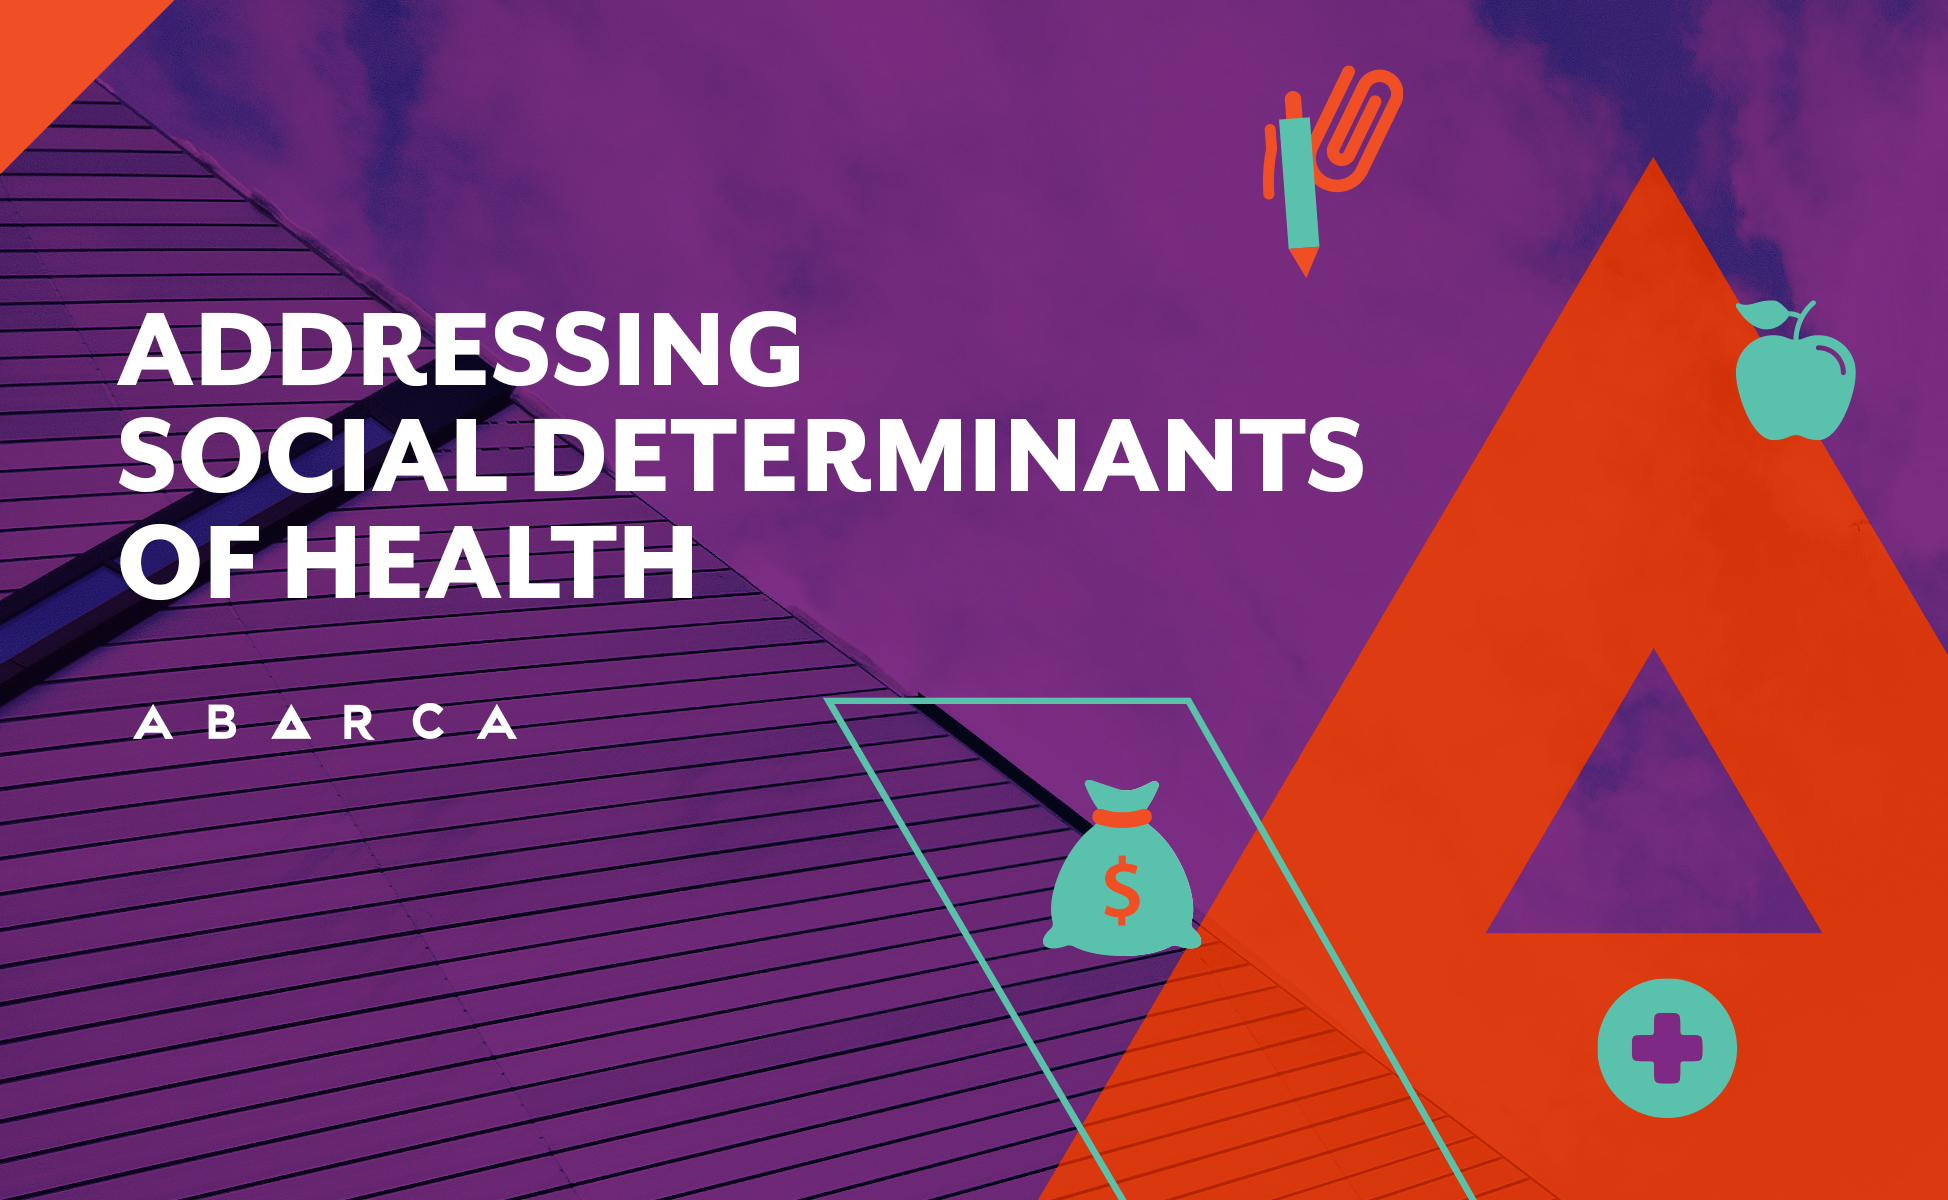 Abarca_Addressing Social Detriments of Health